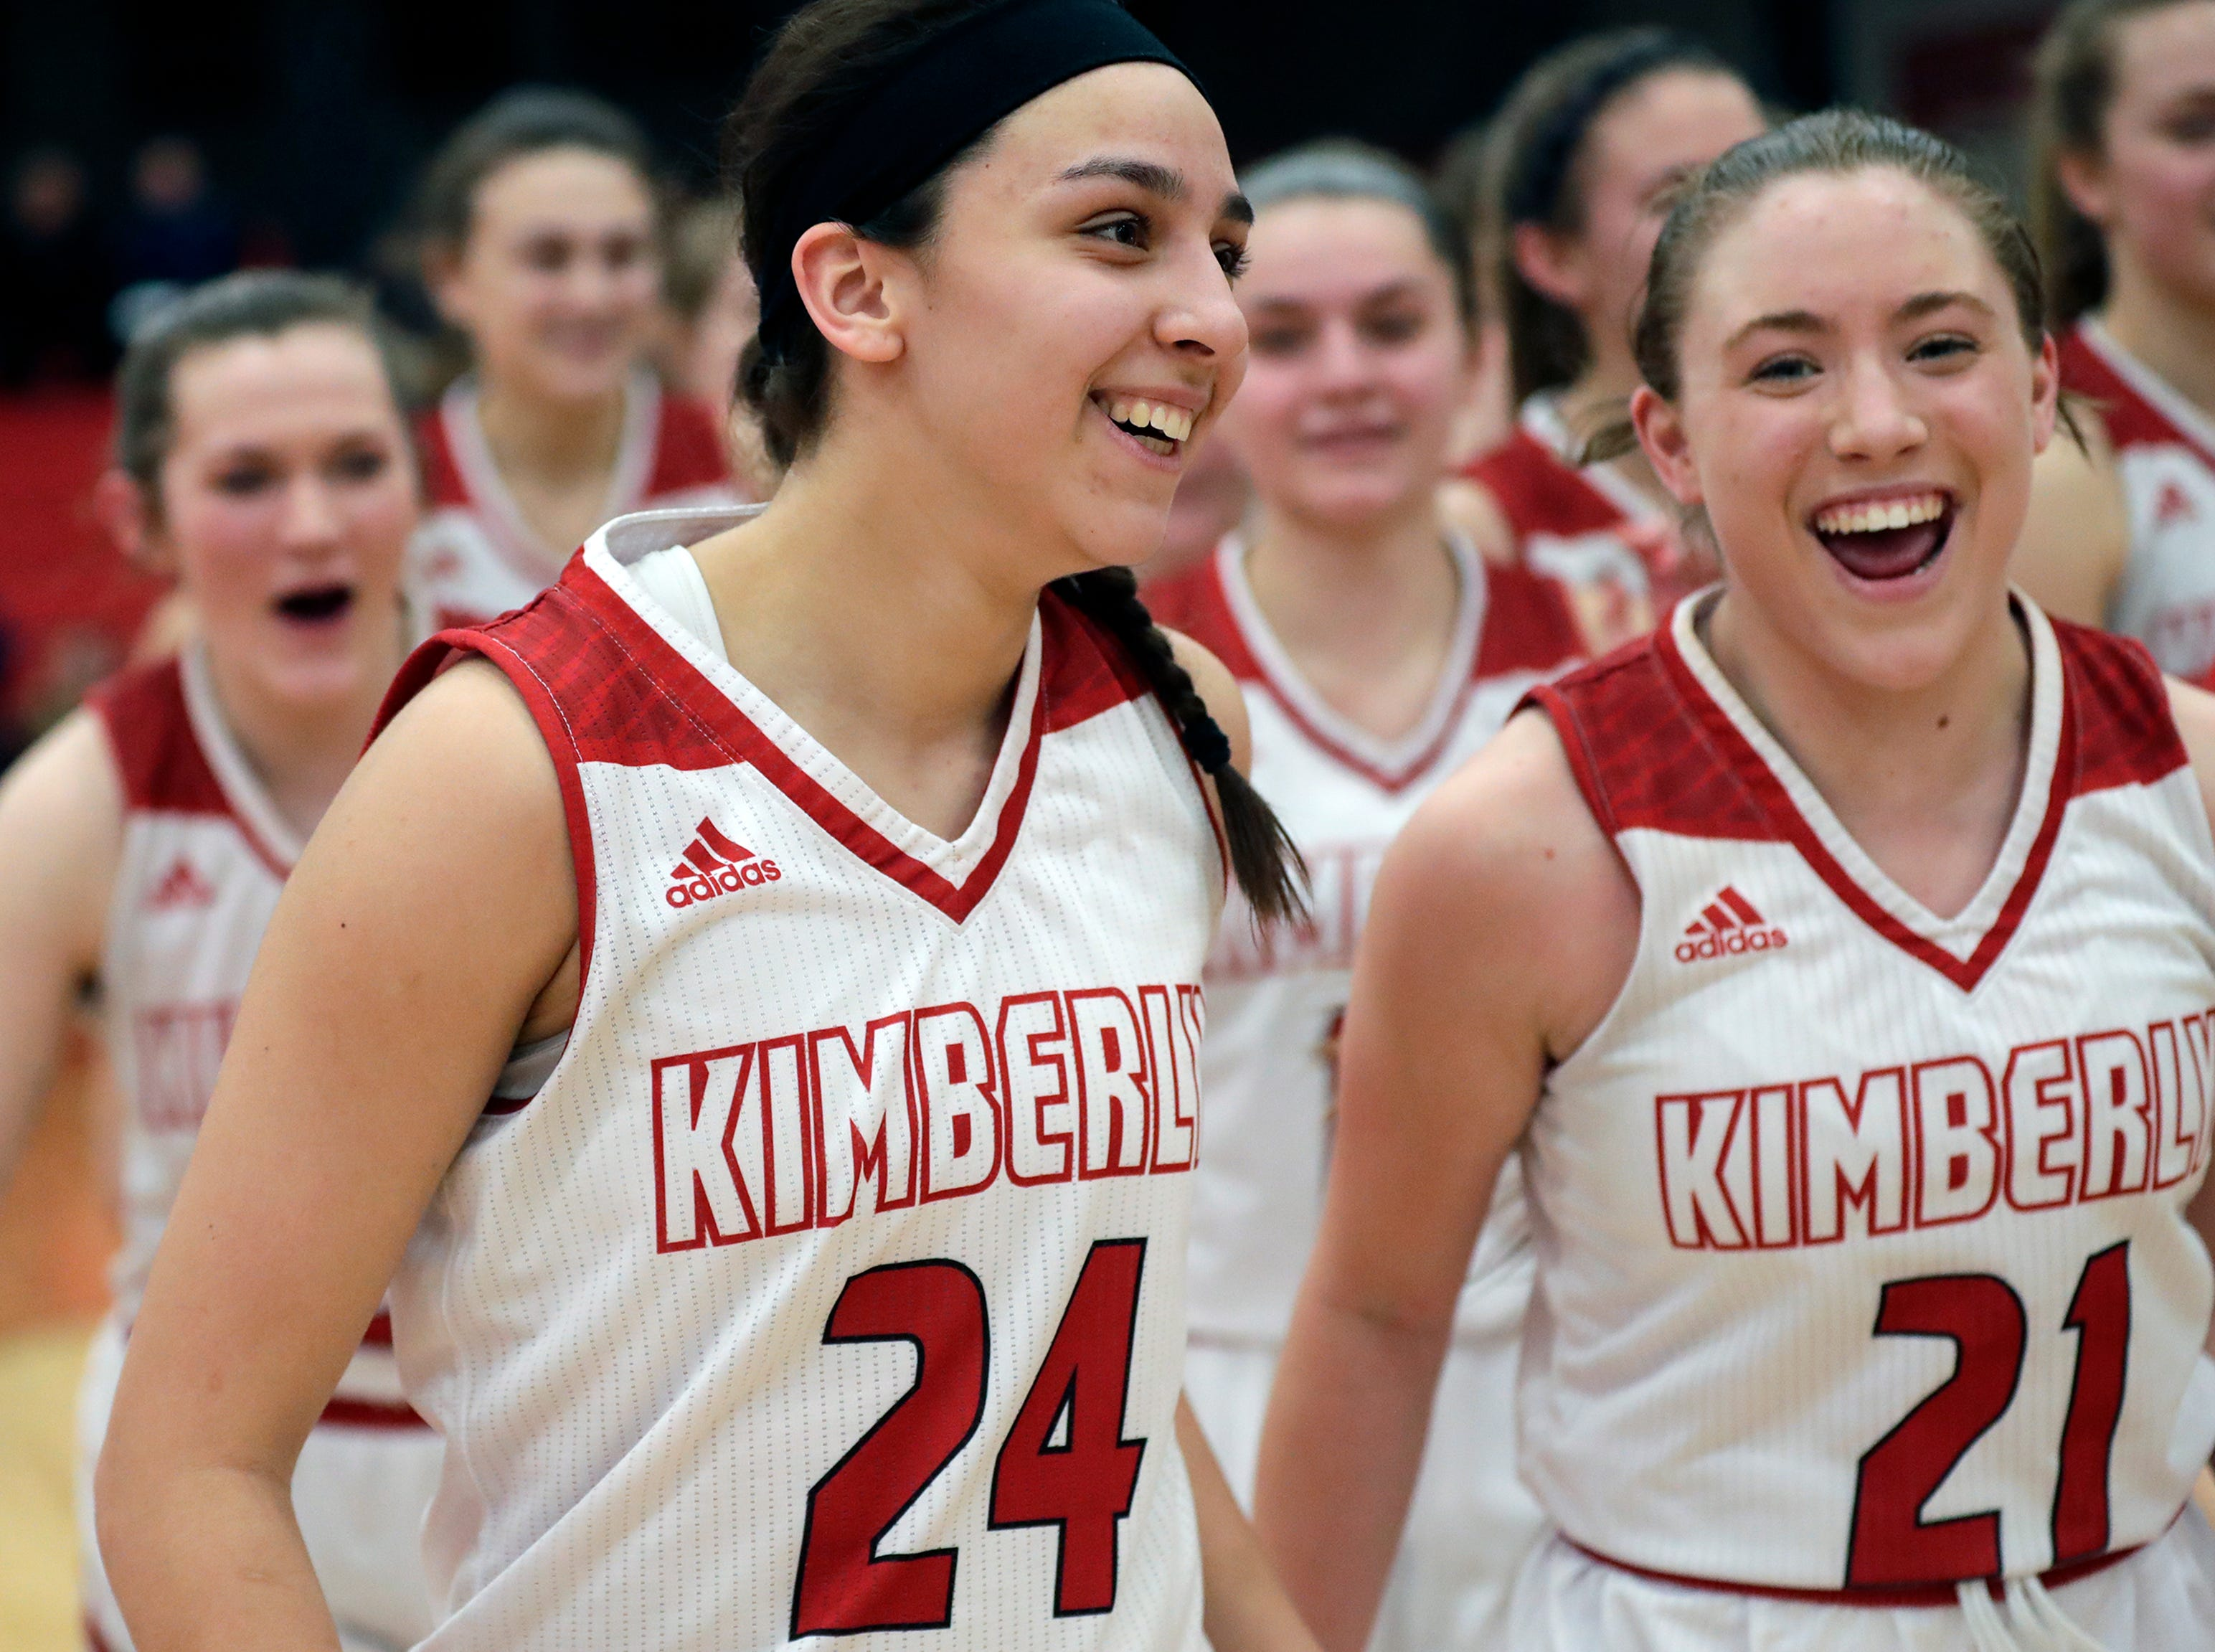 Kimberly High School's Shea Dechant (24) and Kate Karch (21) celebrate their 52-48 victory against Appleton North High School during their girls basketball game Monday, February 11, 2019, in Kimberly, Wis. Dan Powers/USA TODAY NETWORK-Wisconsin